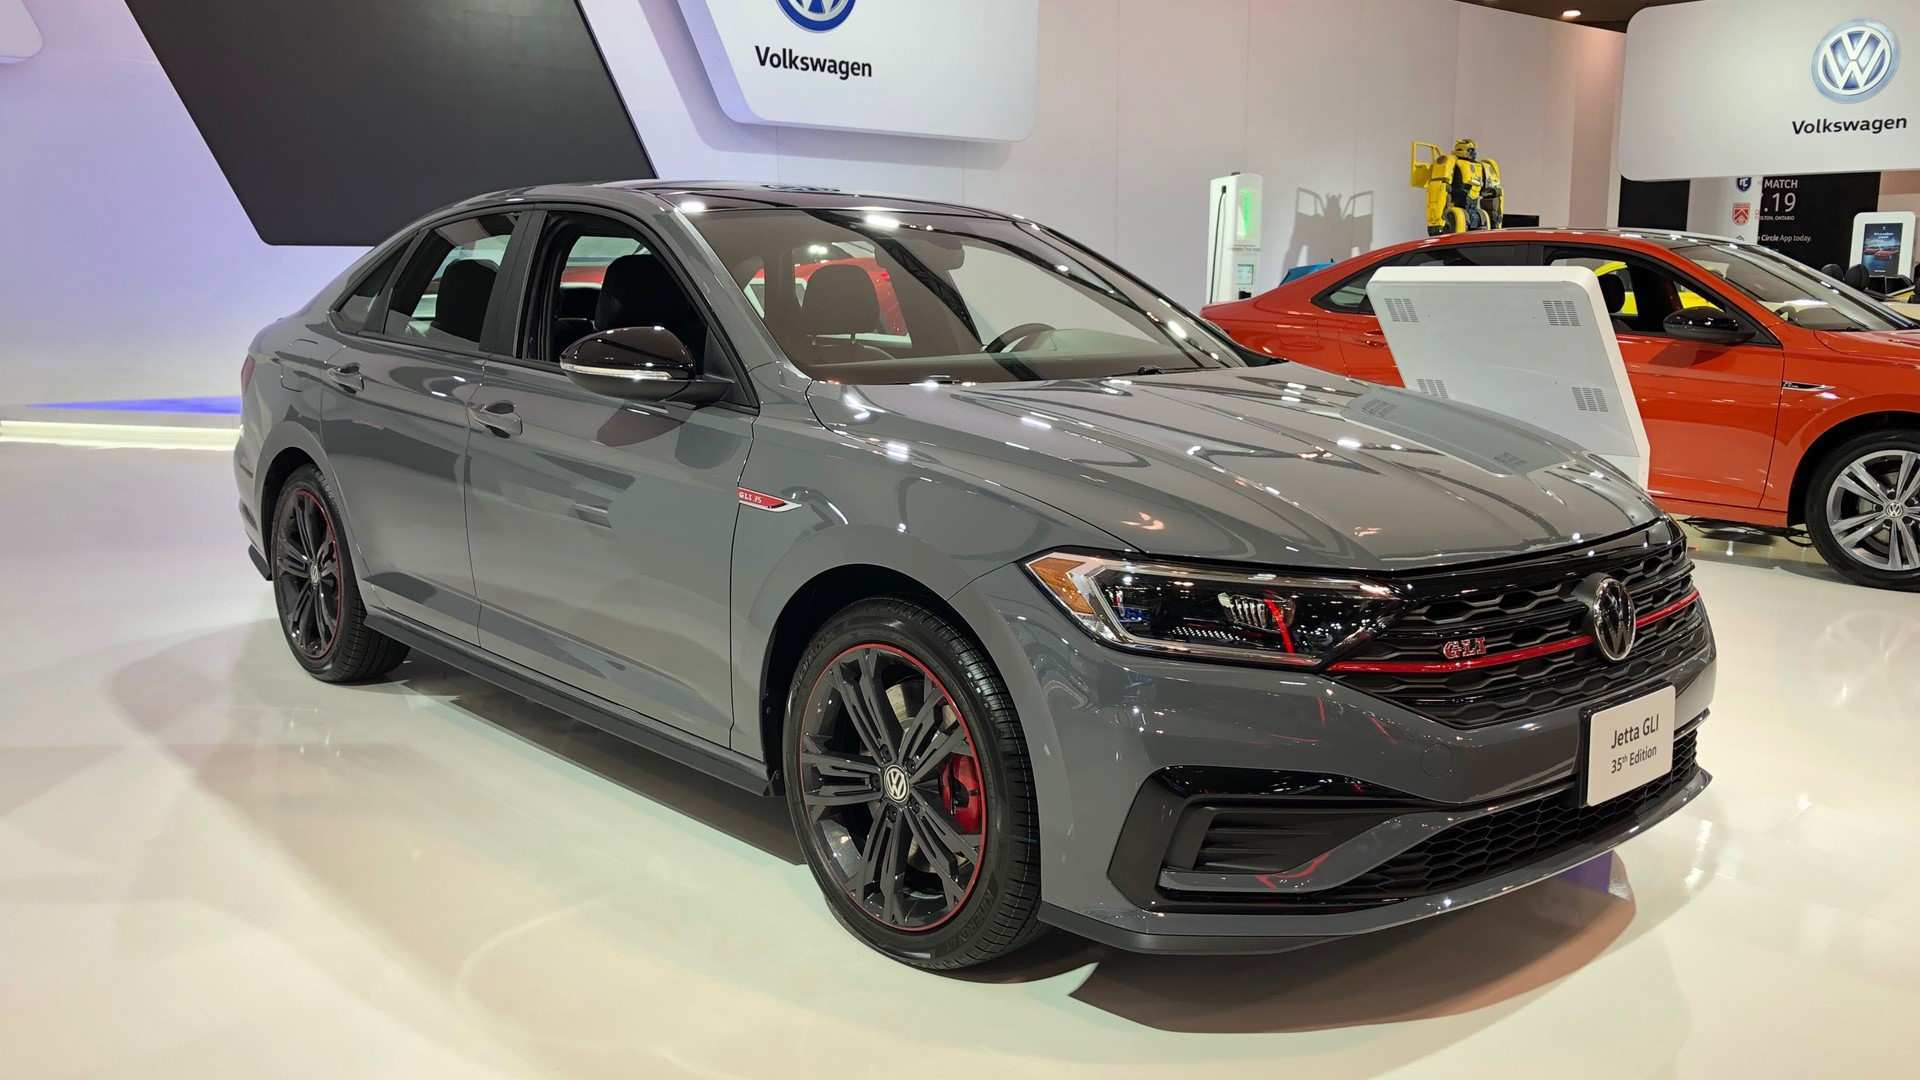 32 Gallery of Vw Jetta 2019 Canada Specs and Review by Vw Jetta 2019 Canada